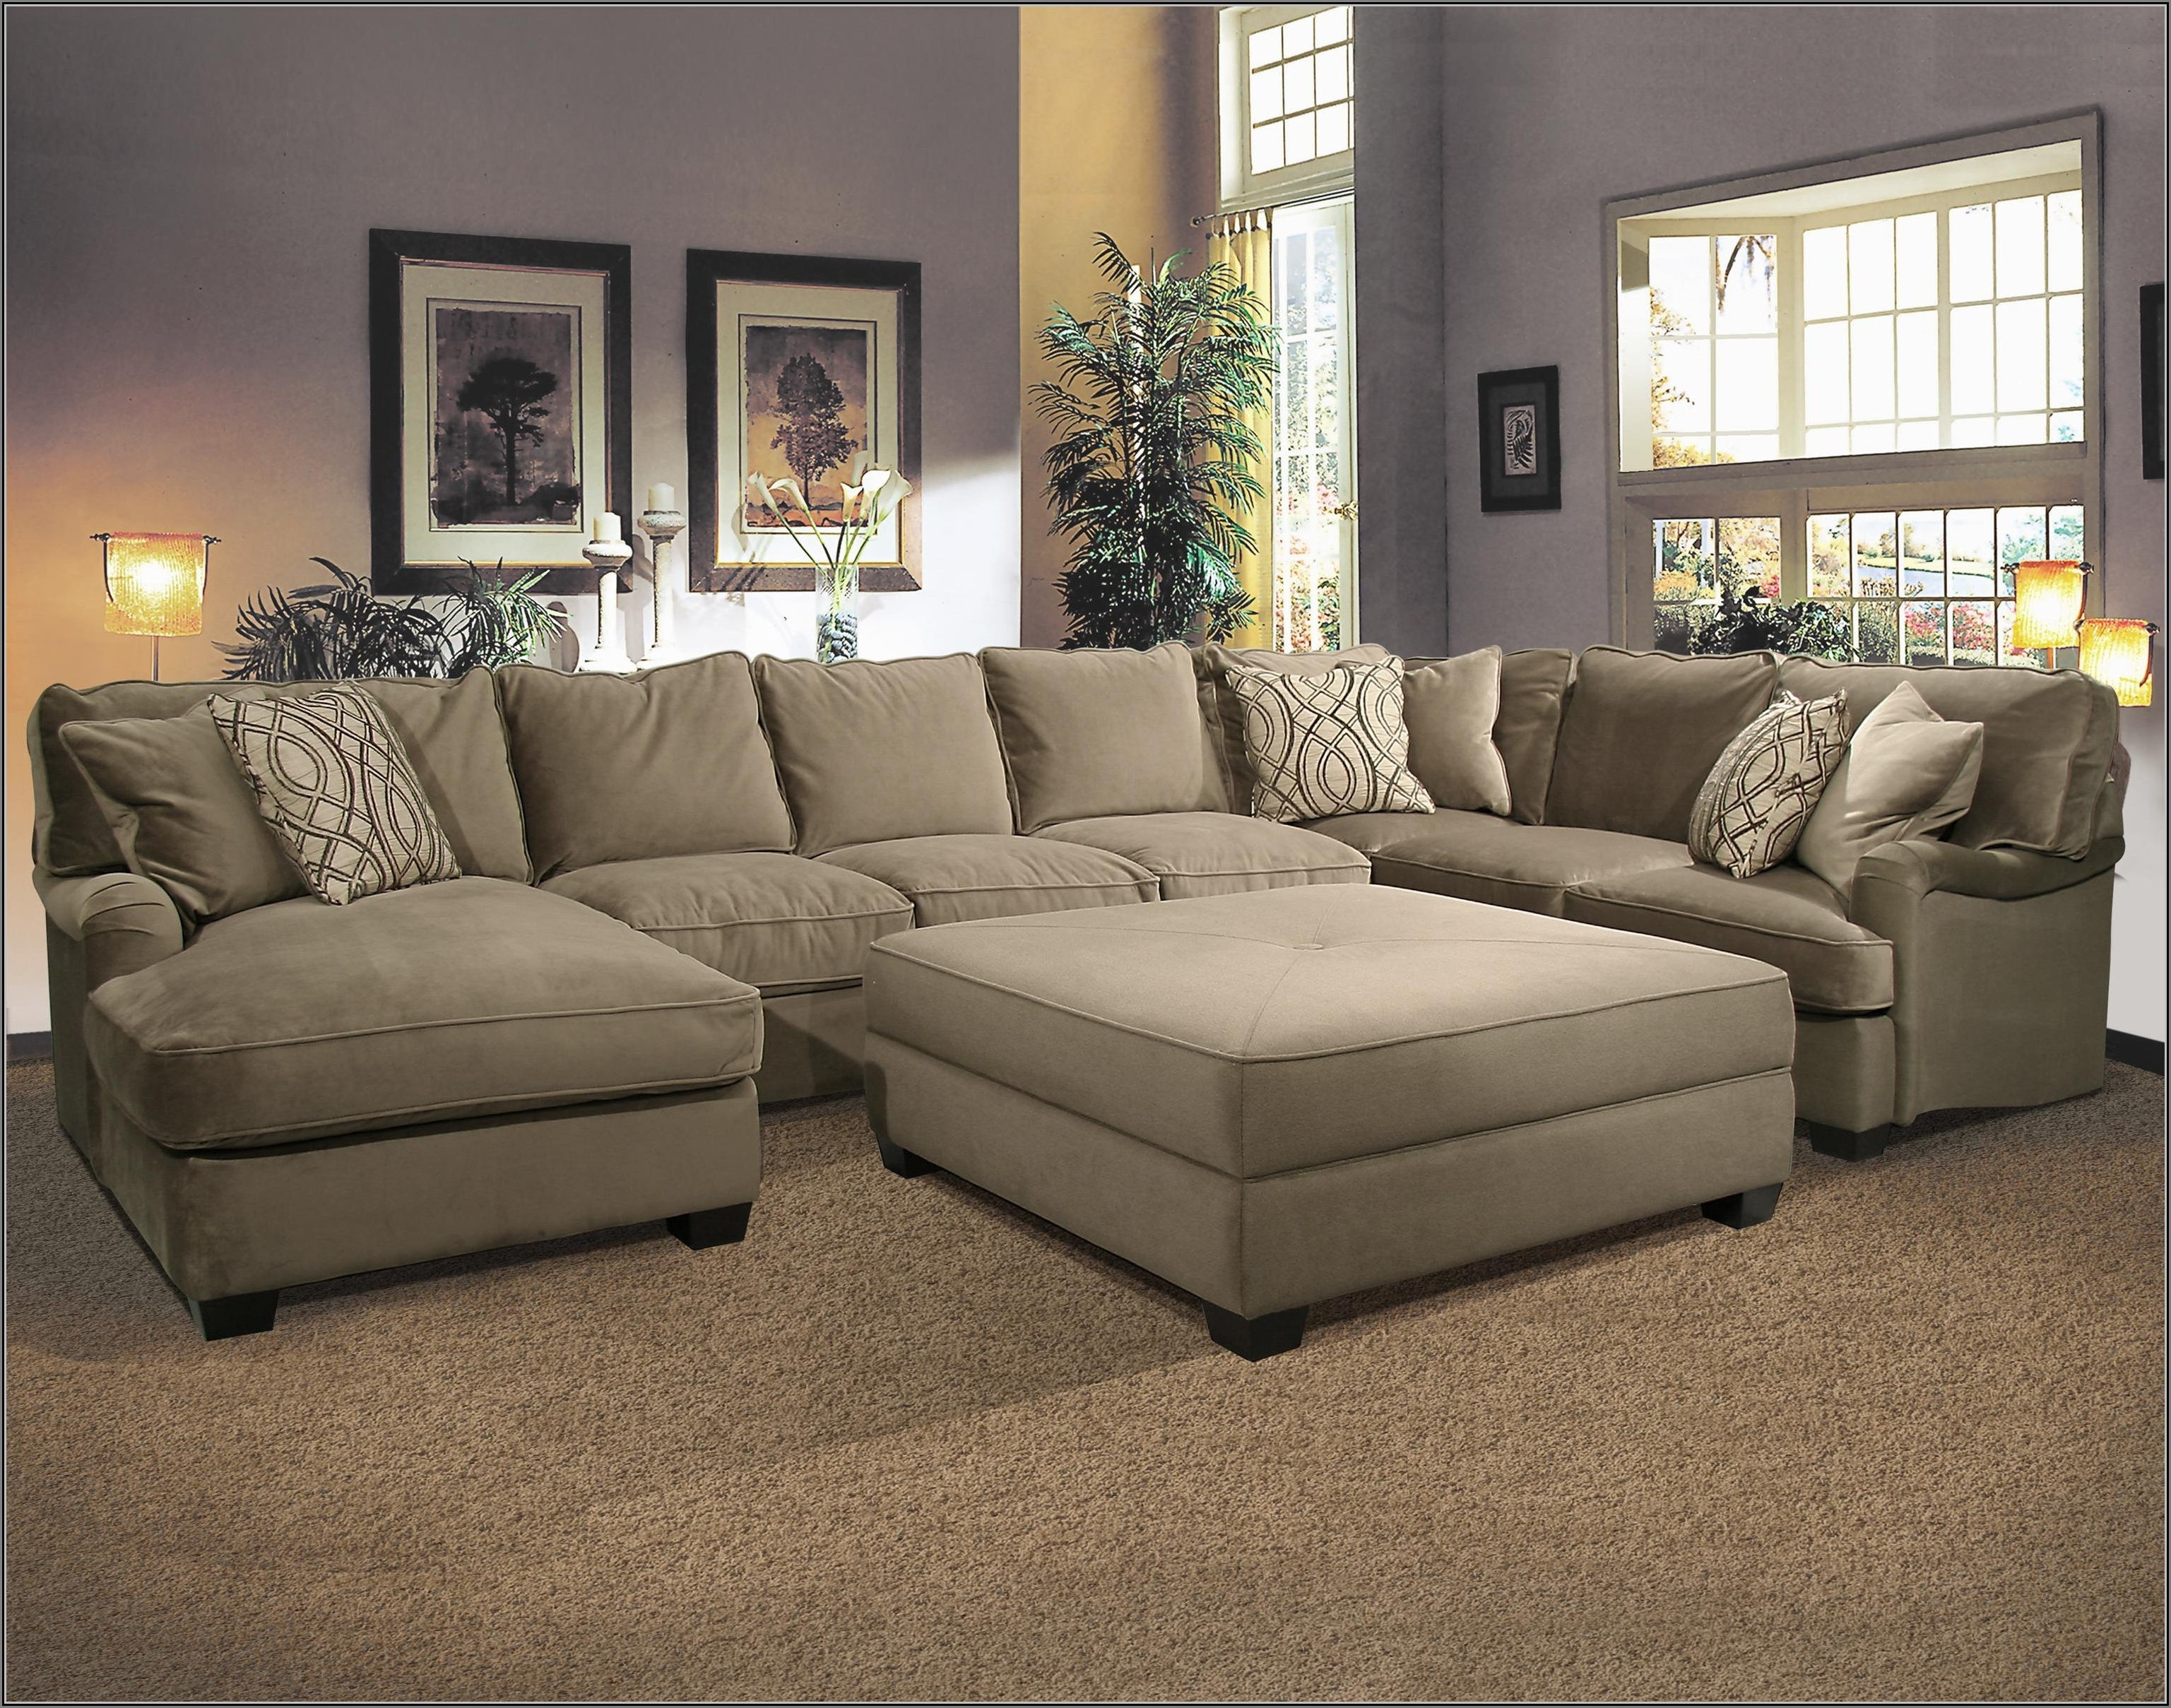 Fashionable Sofas With Ottoman Intended For Wonderful Sofas Awesome Large Sectional Sofa With Ottoman Regard (View 7 of 15)